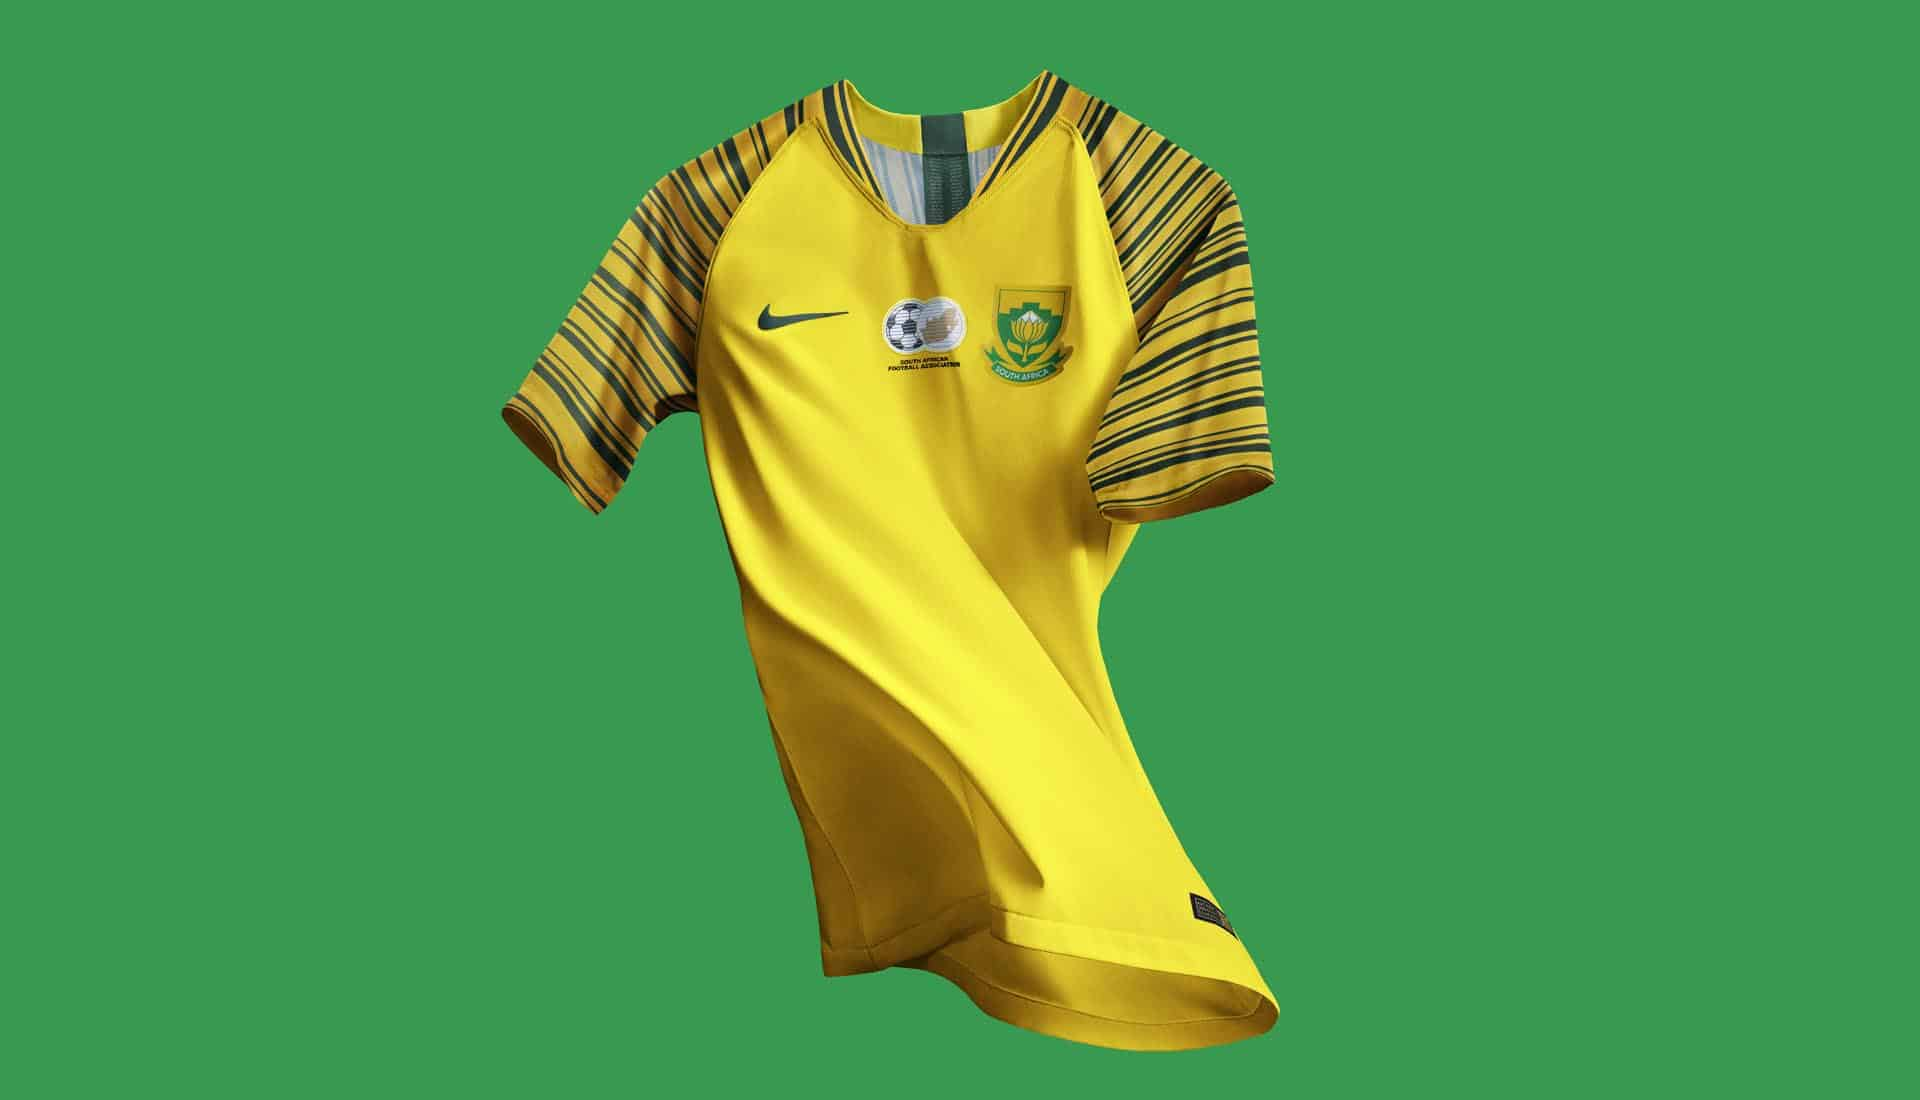 maillot-football-nike-afrique-sud-domicile-2018-img1